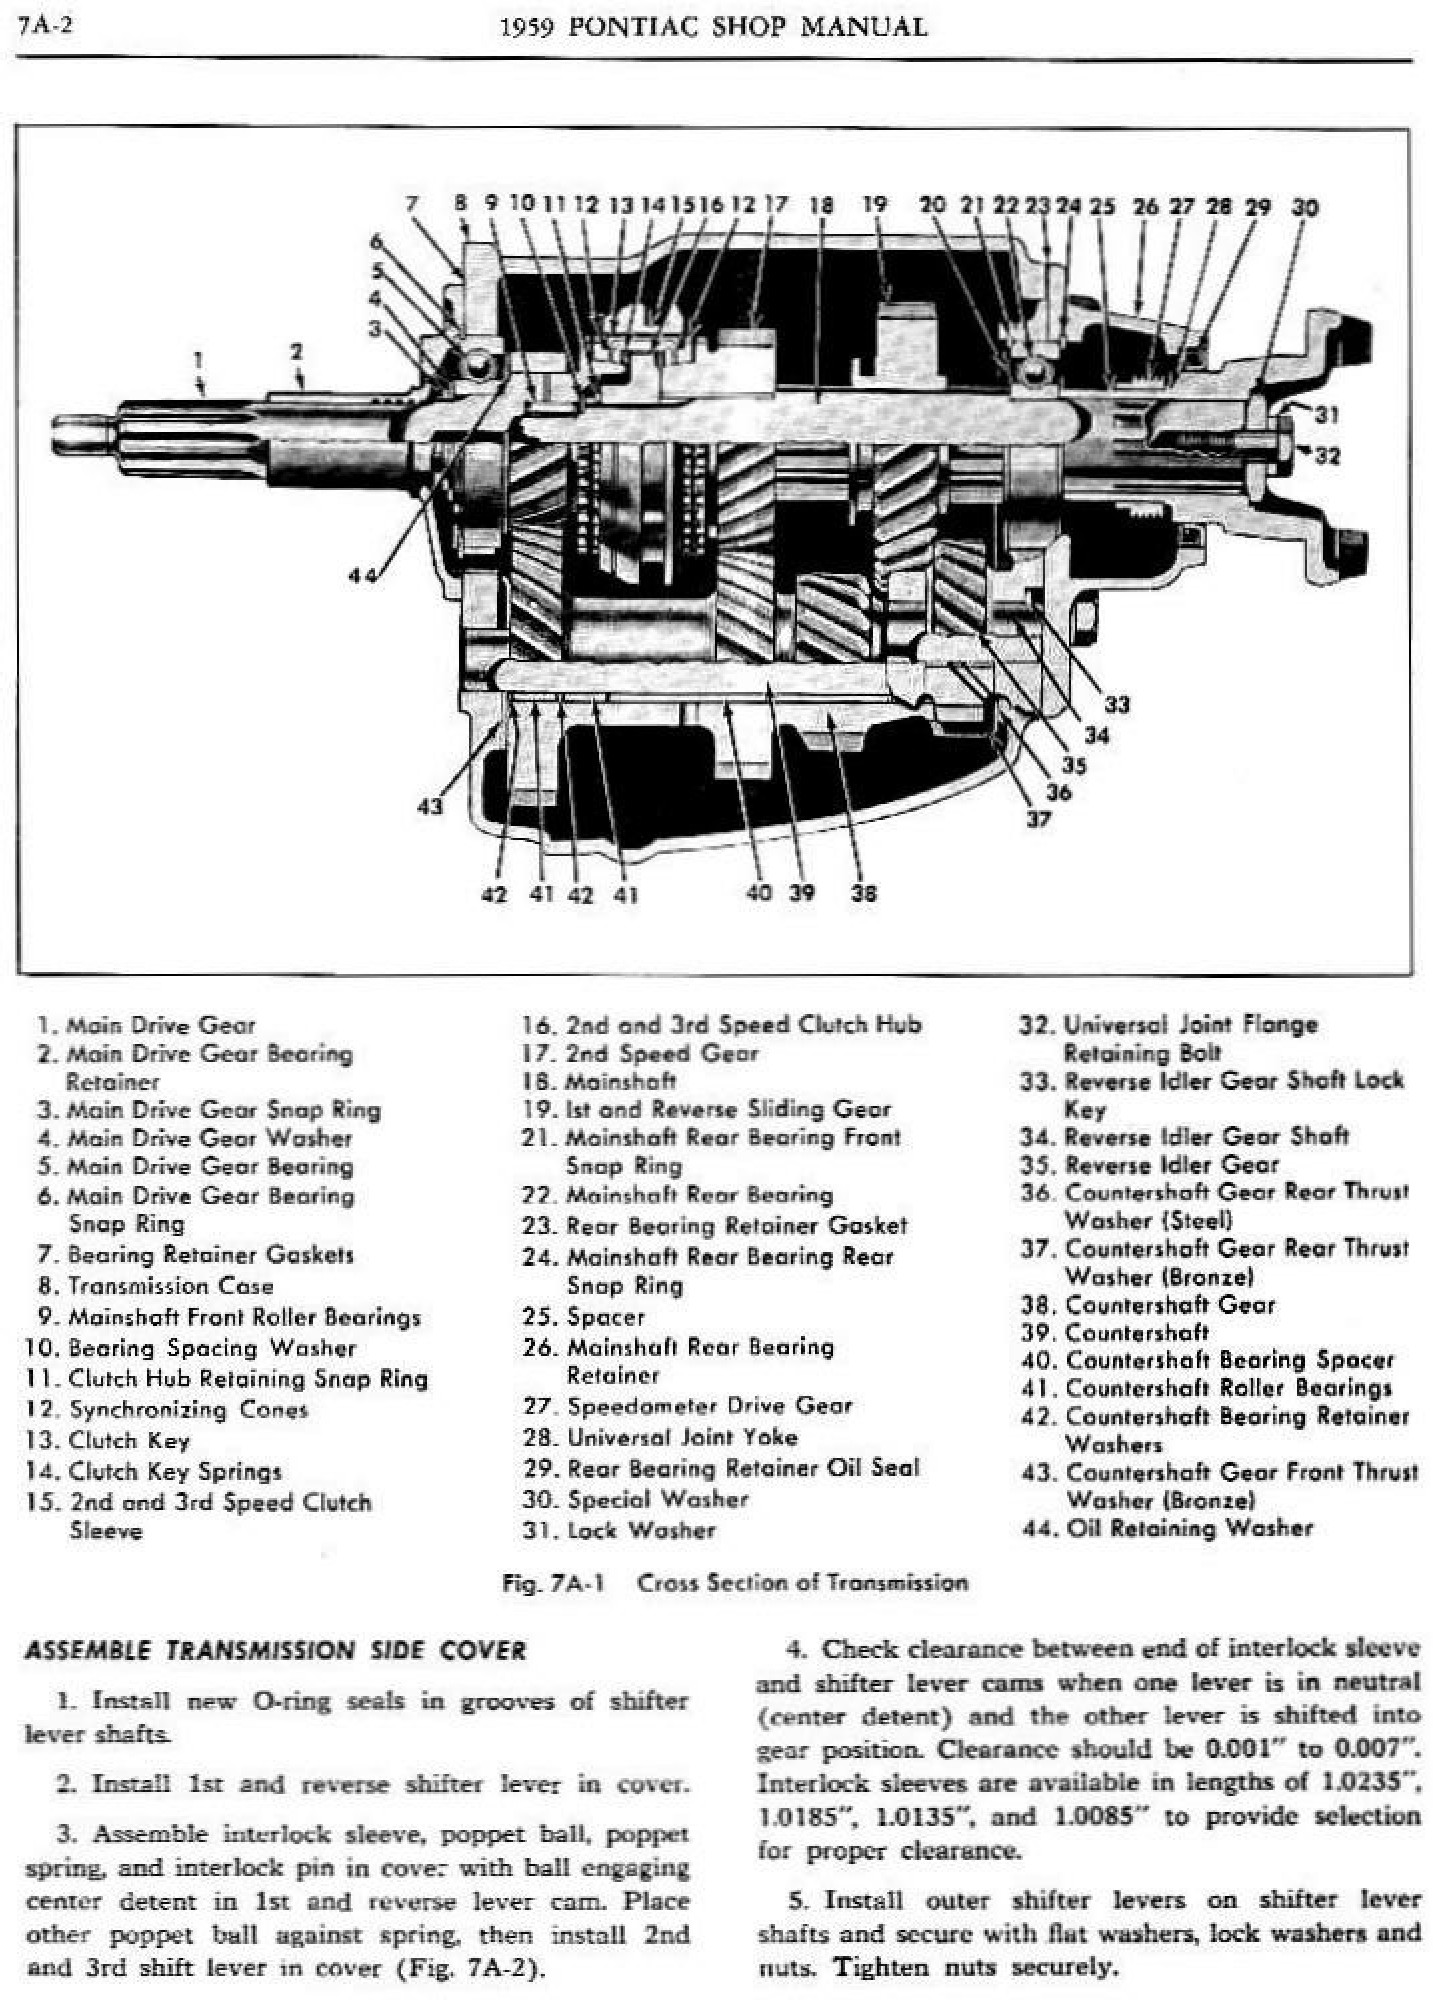 1959 Pontiac Shop Manual- HD Trans. Page 2 of 9